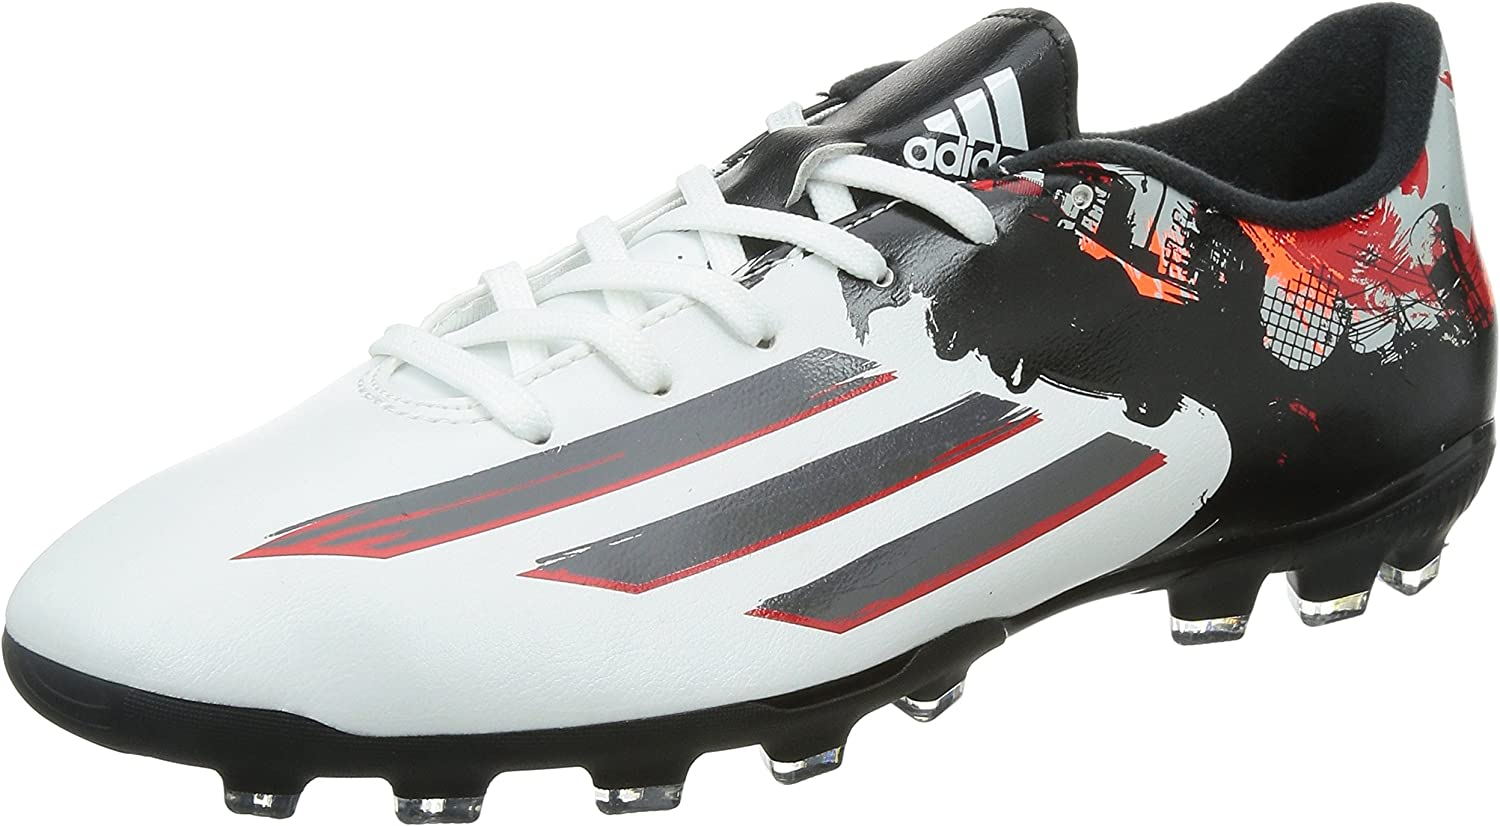 Adidas Football Boots Messi 10.3 Ag Wht